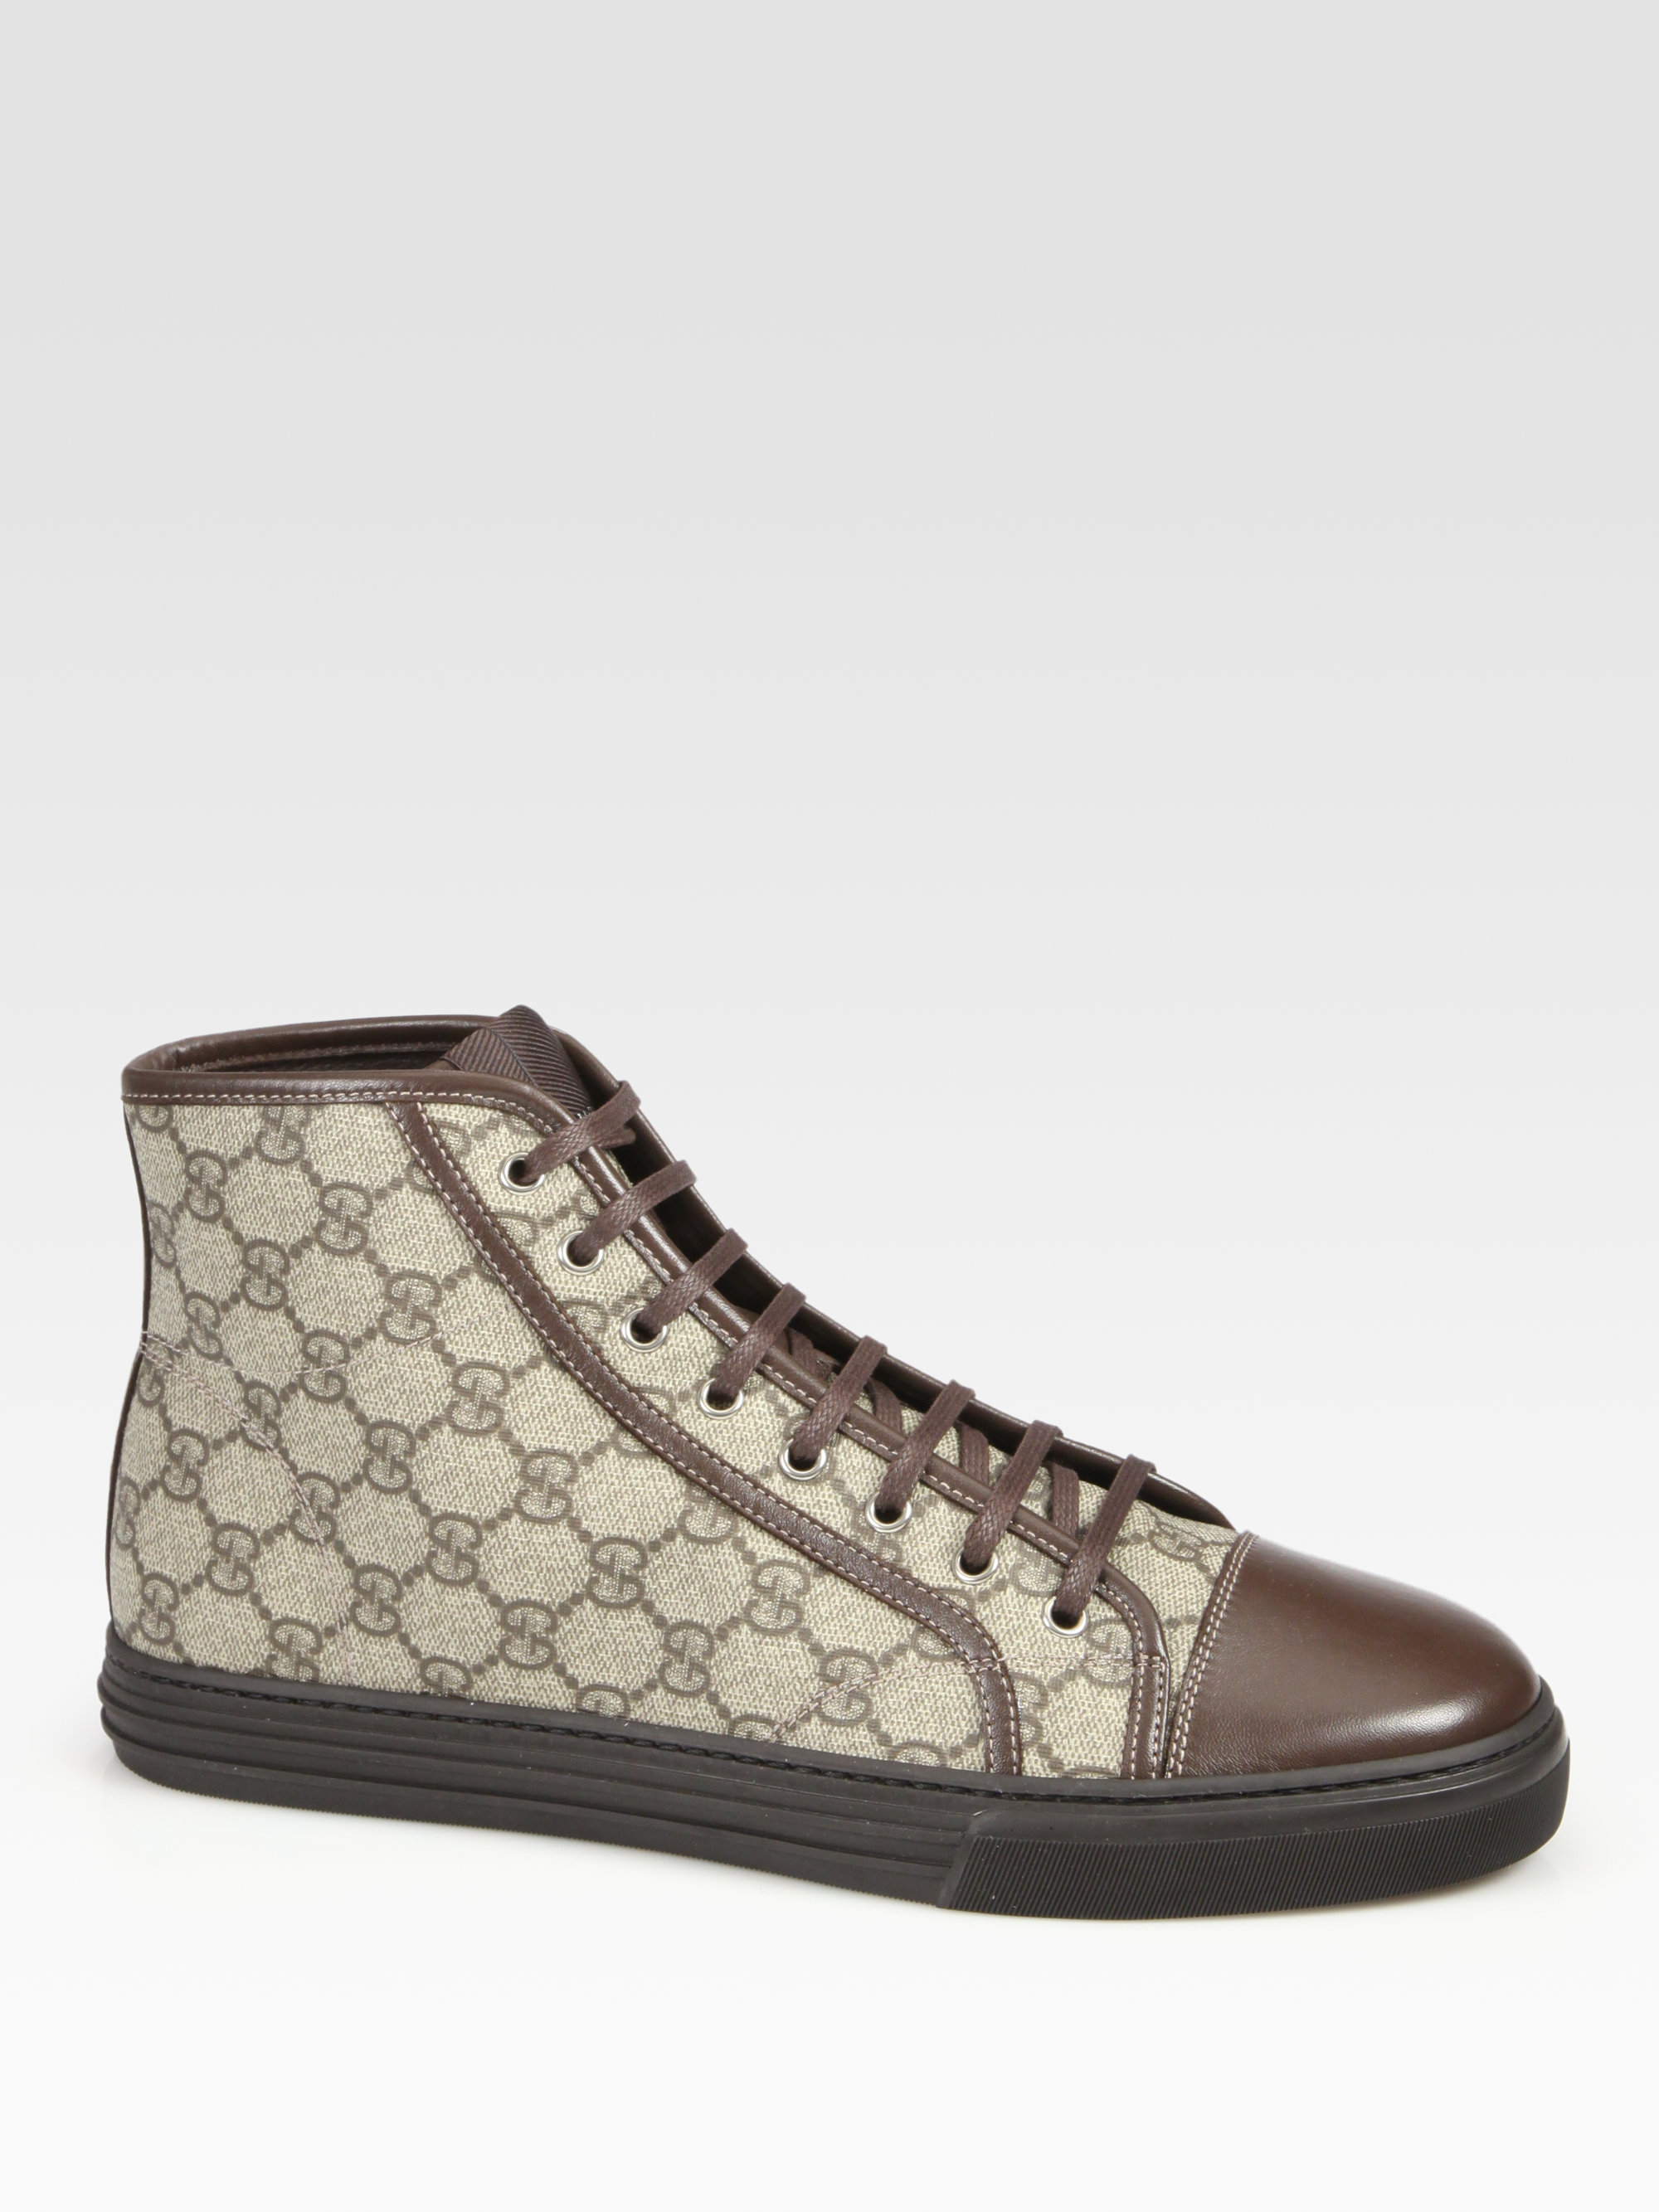 65d469fbf0b5 Lyst - Gucci California High-Top Lace-Up Sneakers in Brown for Men